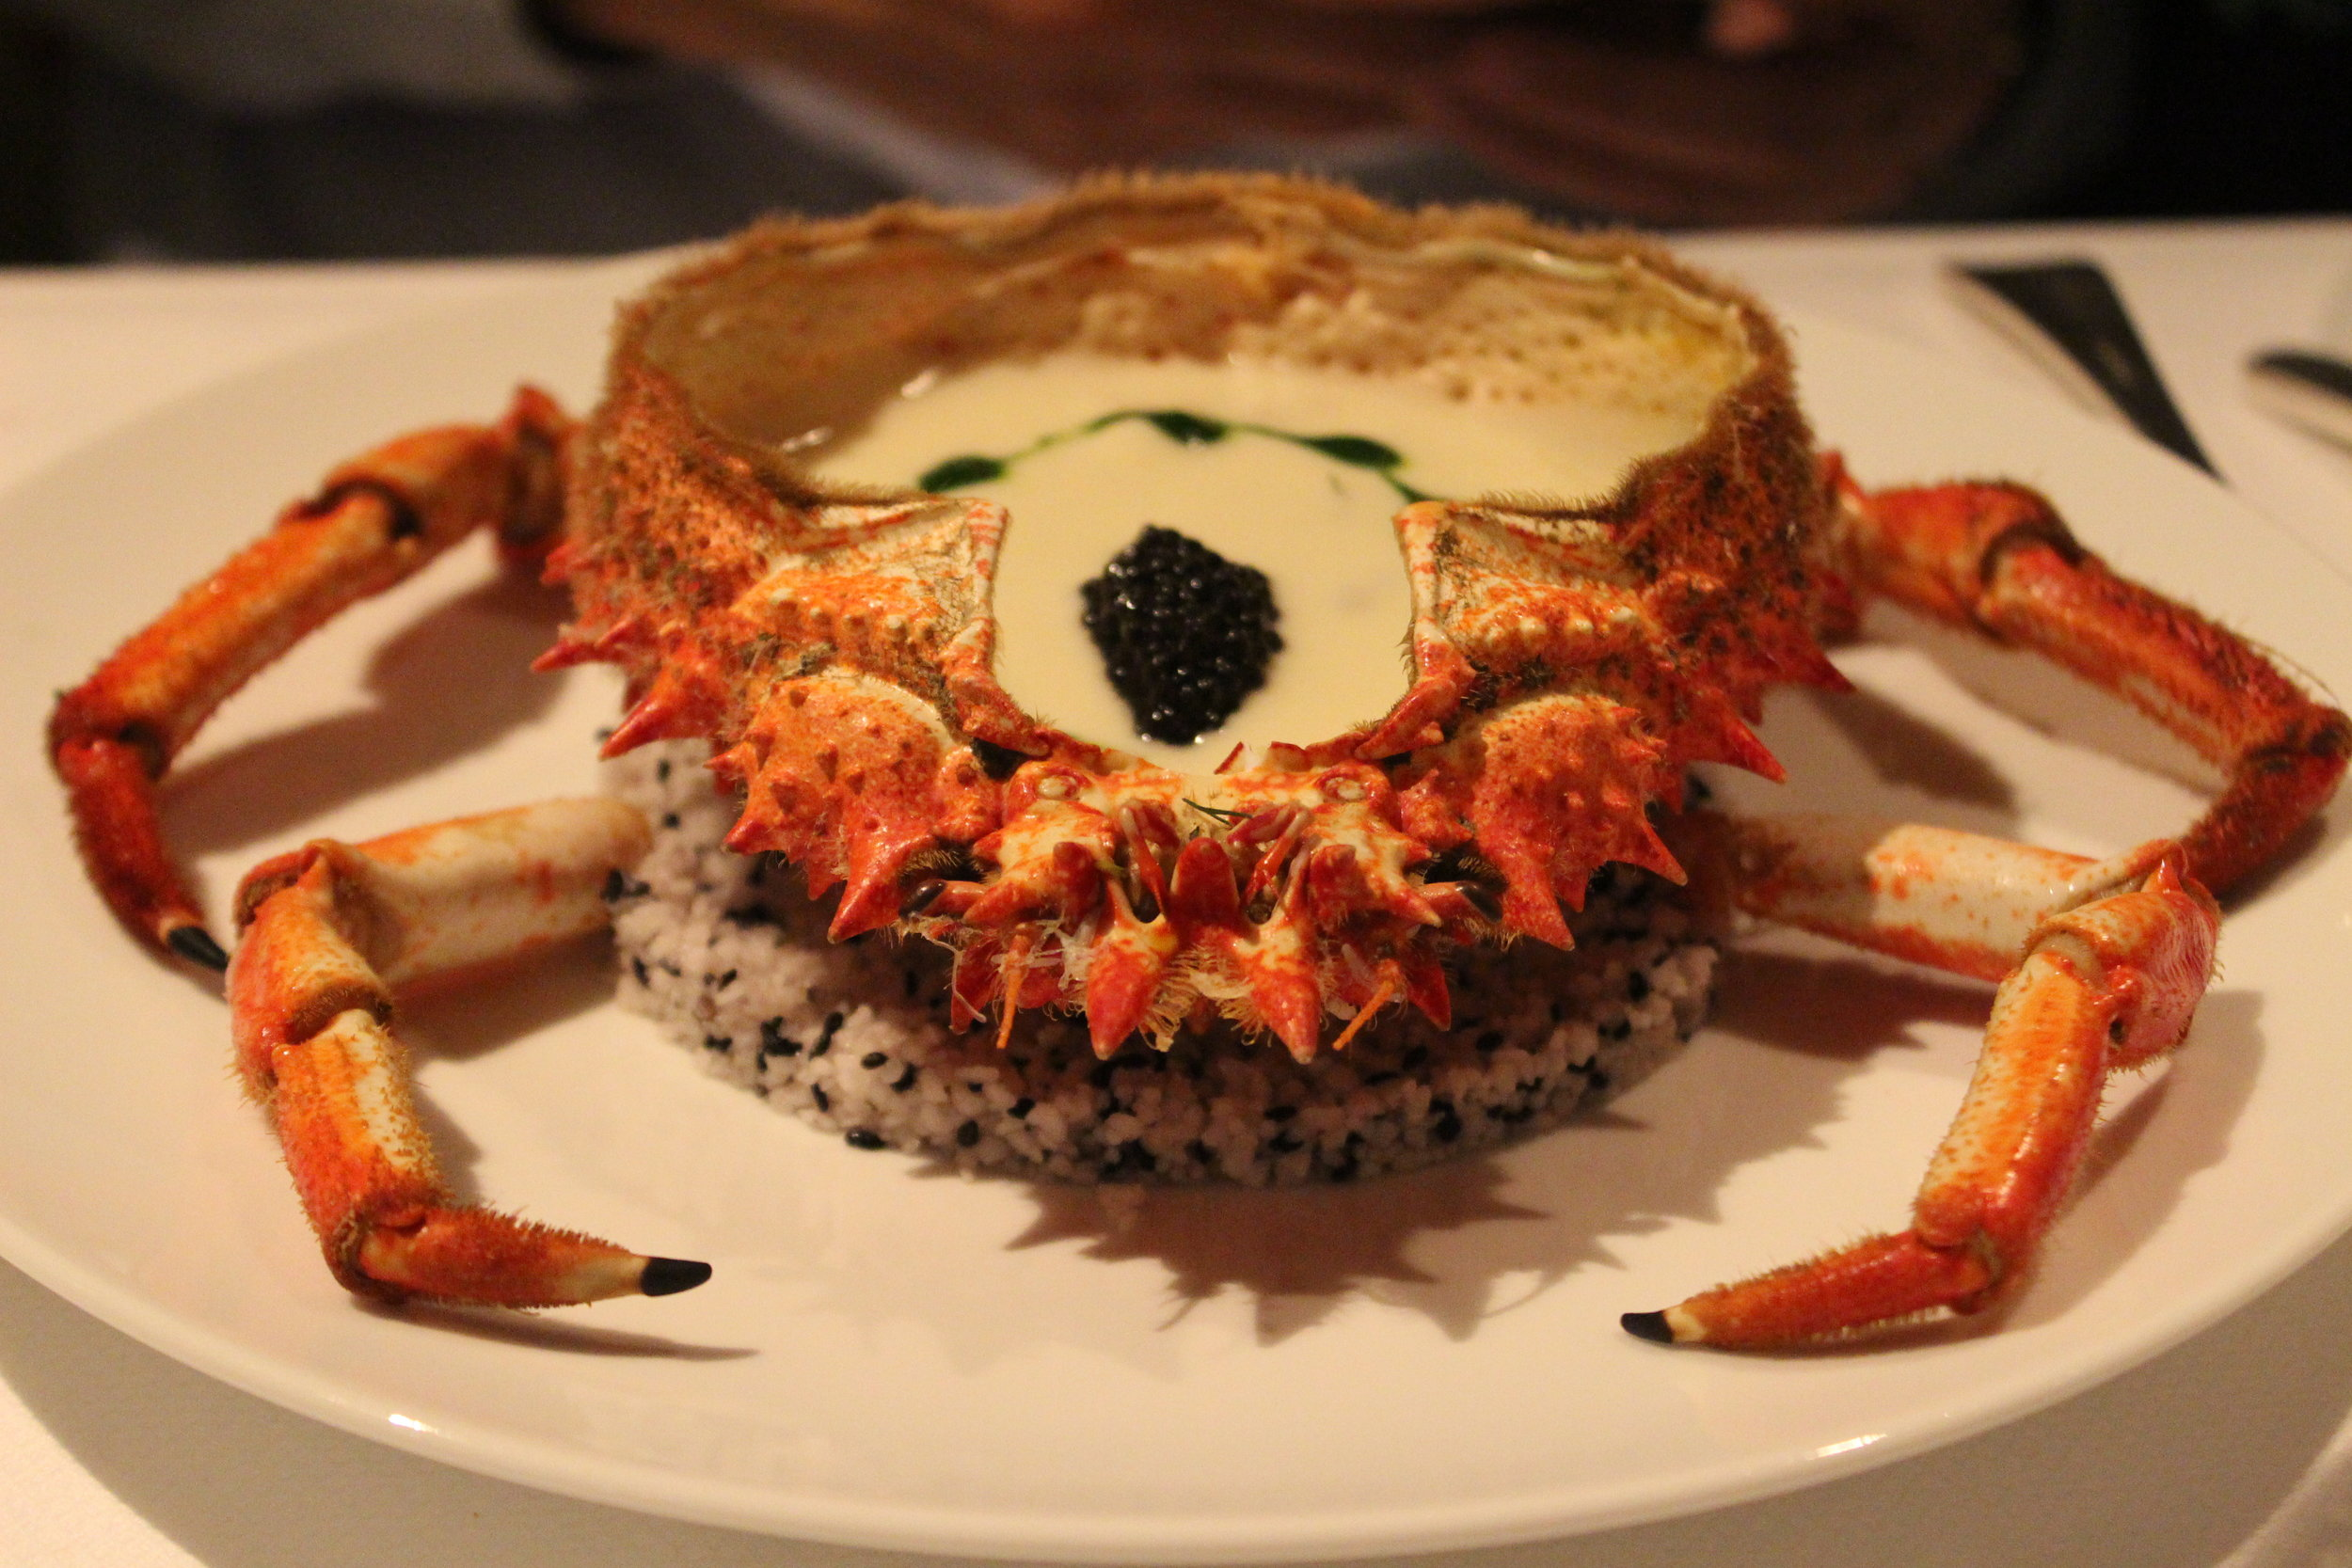 Spider Crab Jelly with Creamy Rock Crab and Herb Fusion